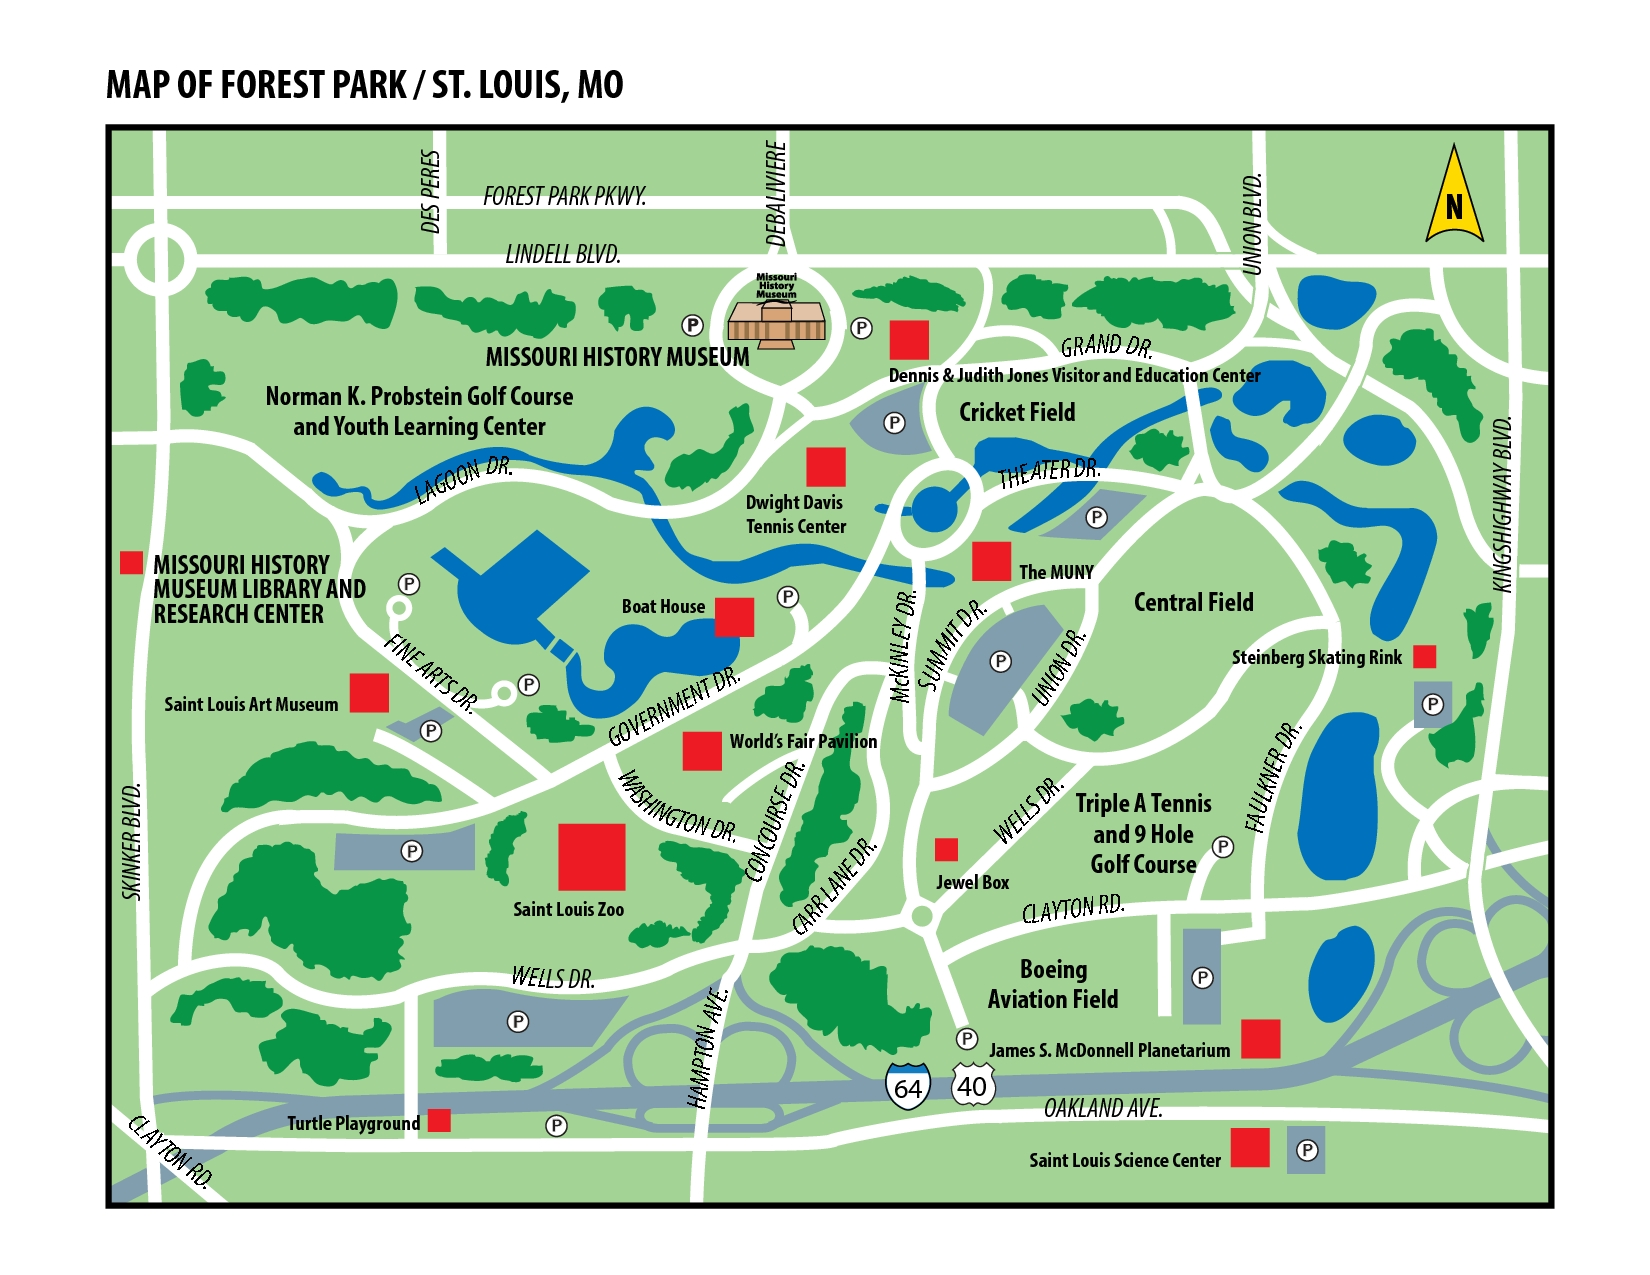 Map Of Forest Park In St. Louis, Missouri | St. Louis inside Boeing St. Louis Facility Map